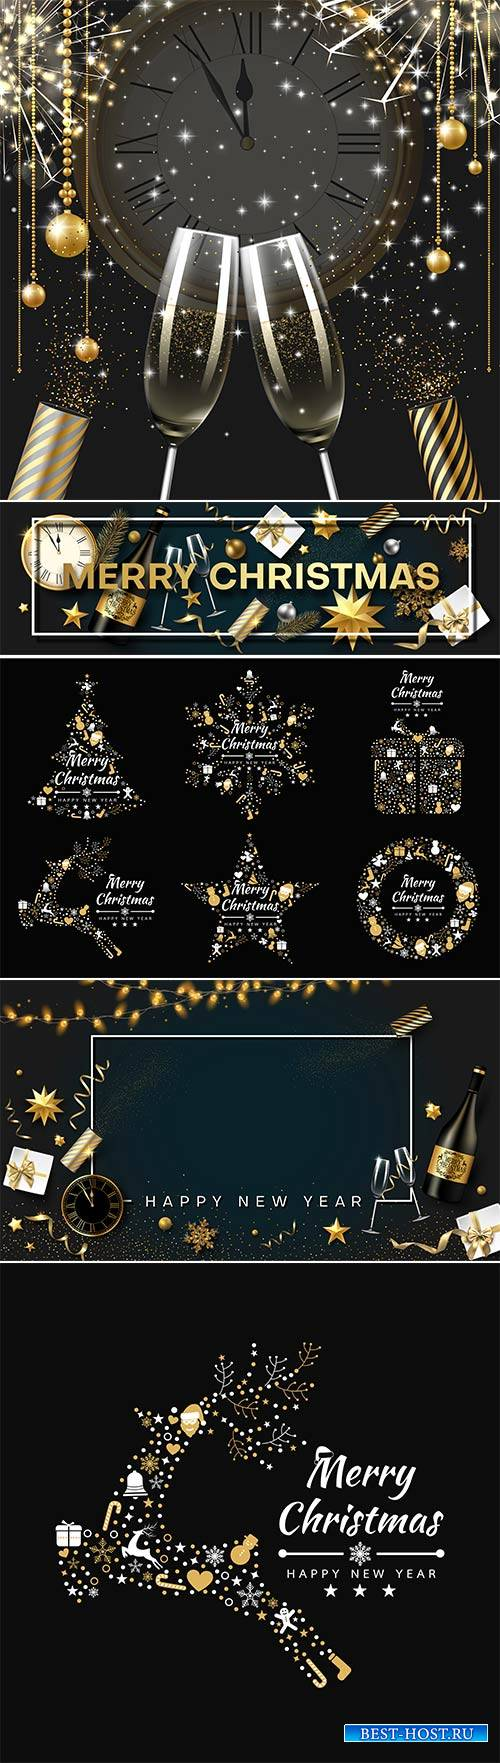 Christmas and New Year vector card with golden decor